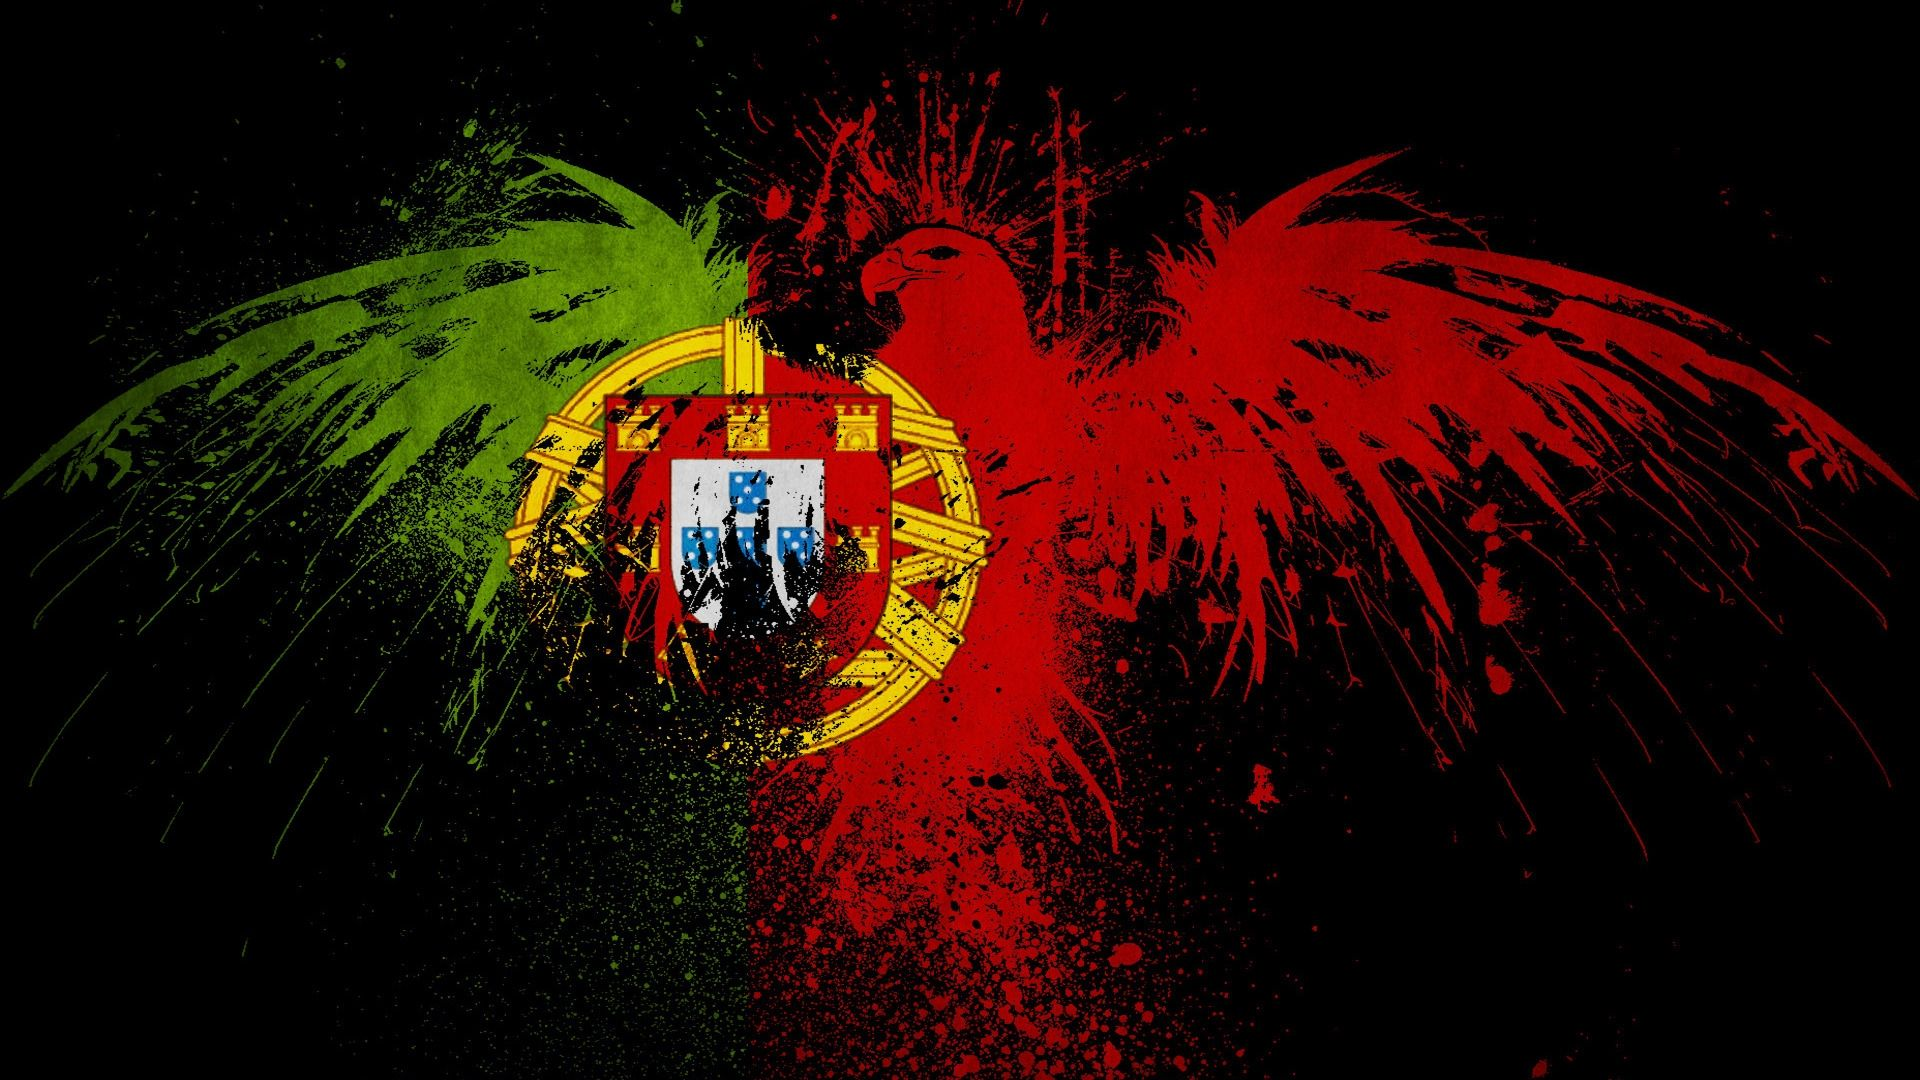 Abstract Portugal Flag World Cup 2014 Wallpaper HD Images 1920x1080